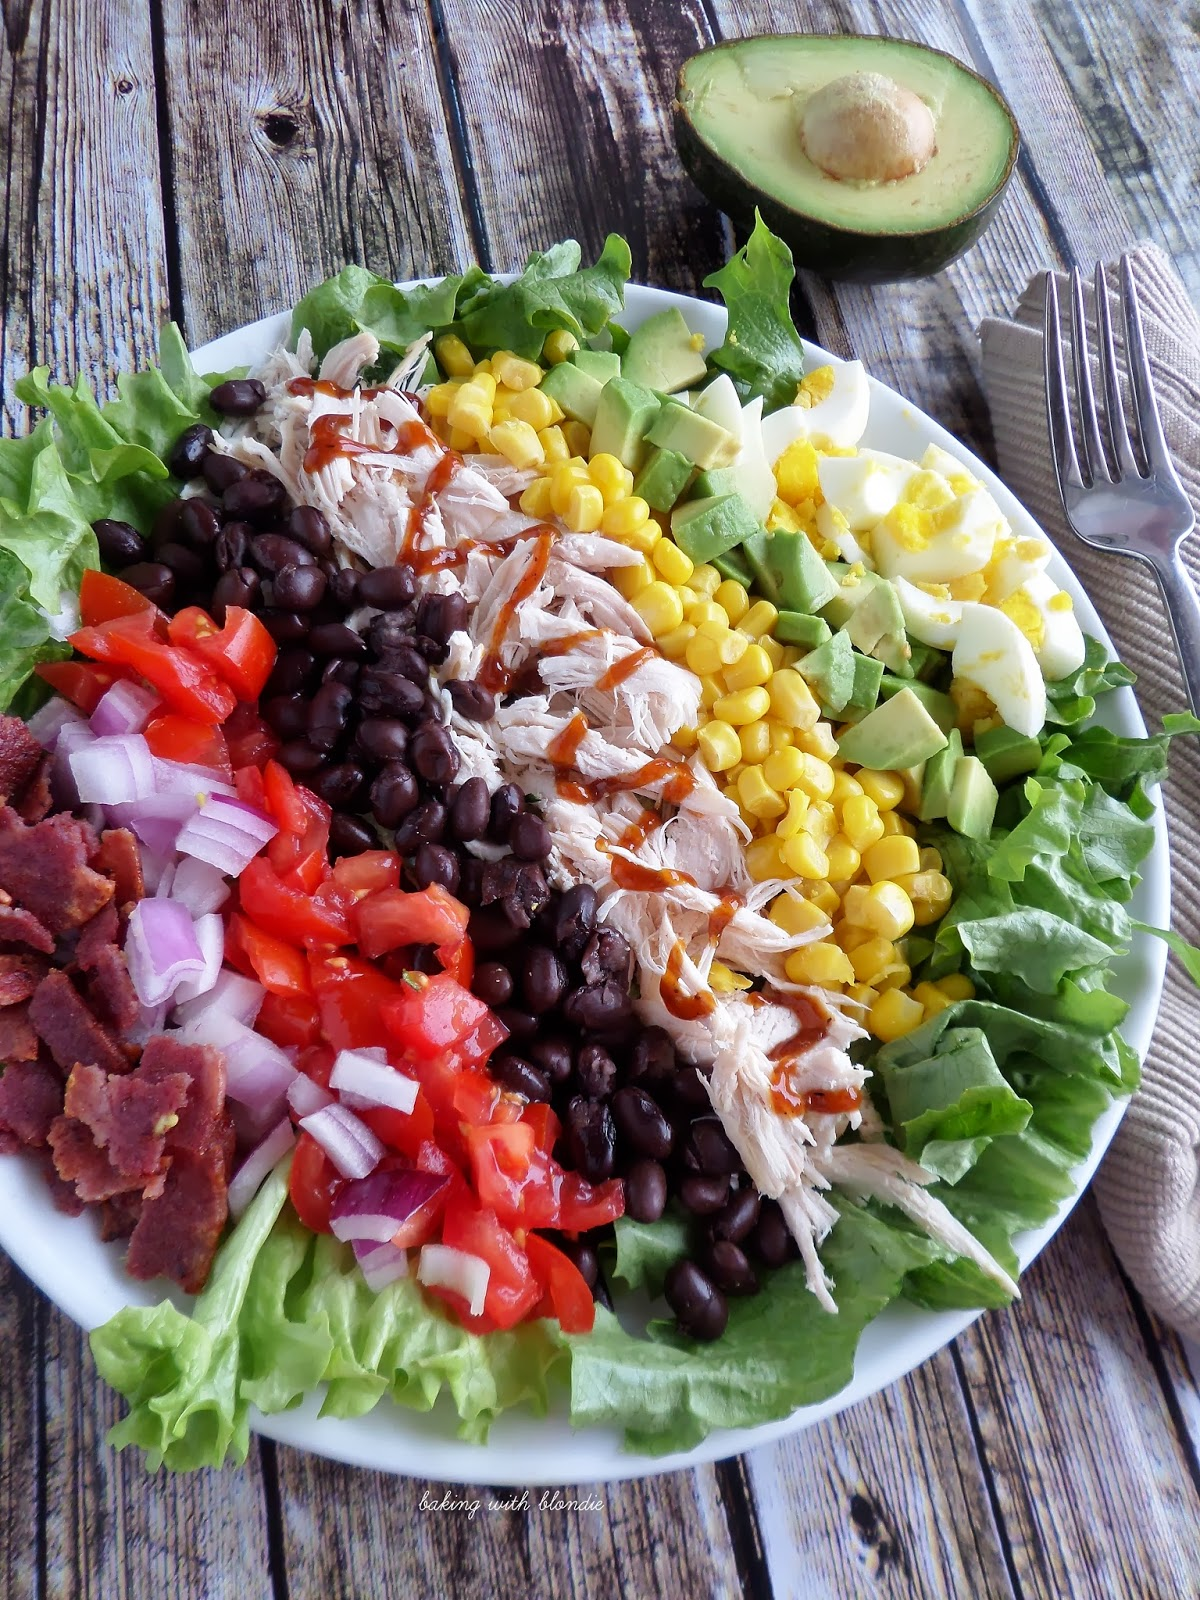 Baking with Blondie : BBQ Chicken Cobb Salad